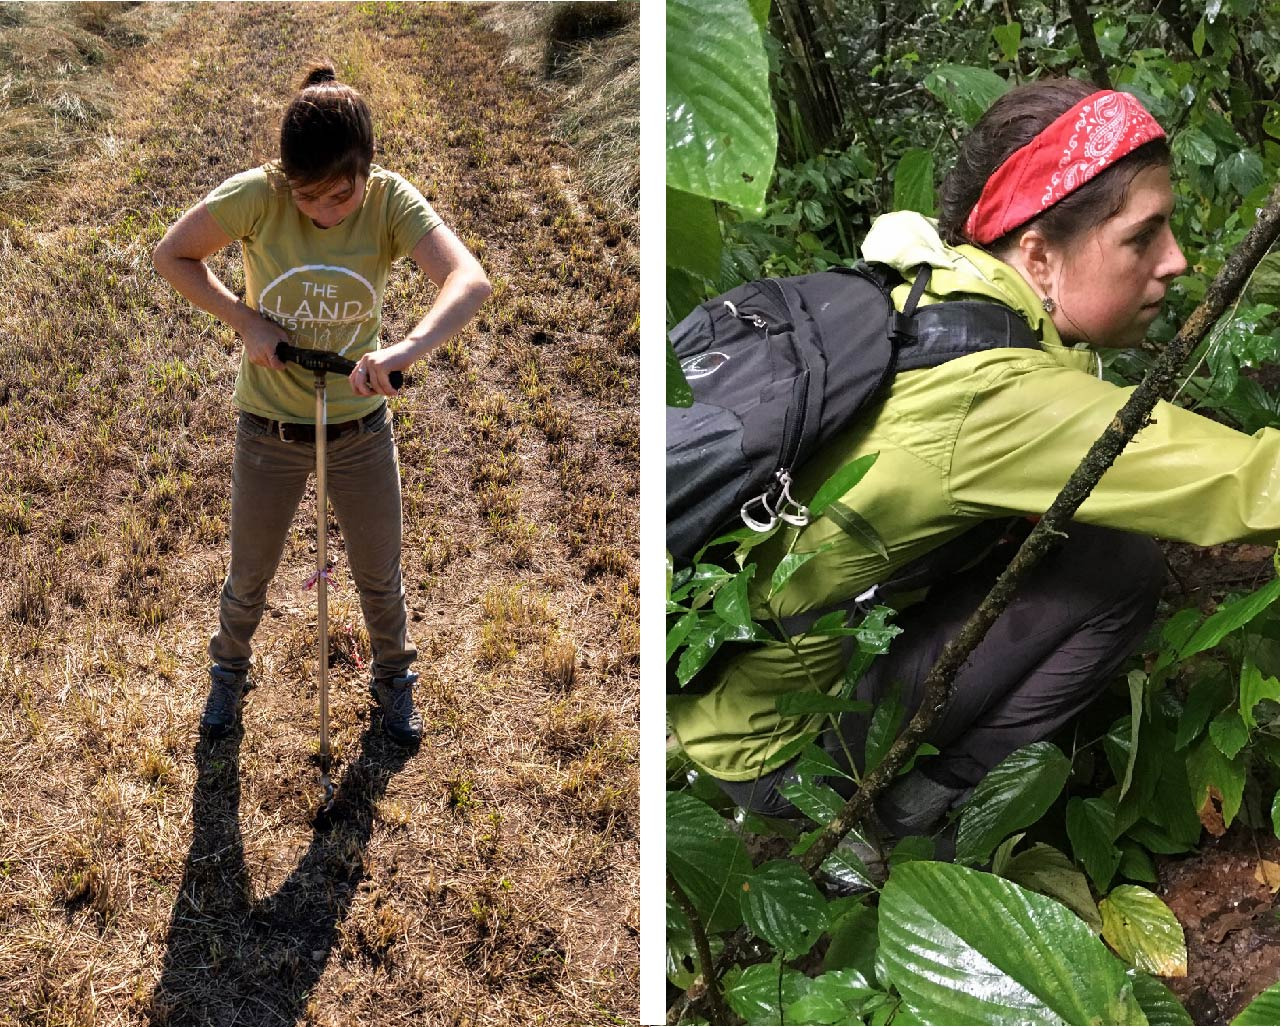 student testing soil in field and hiking in jungle